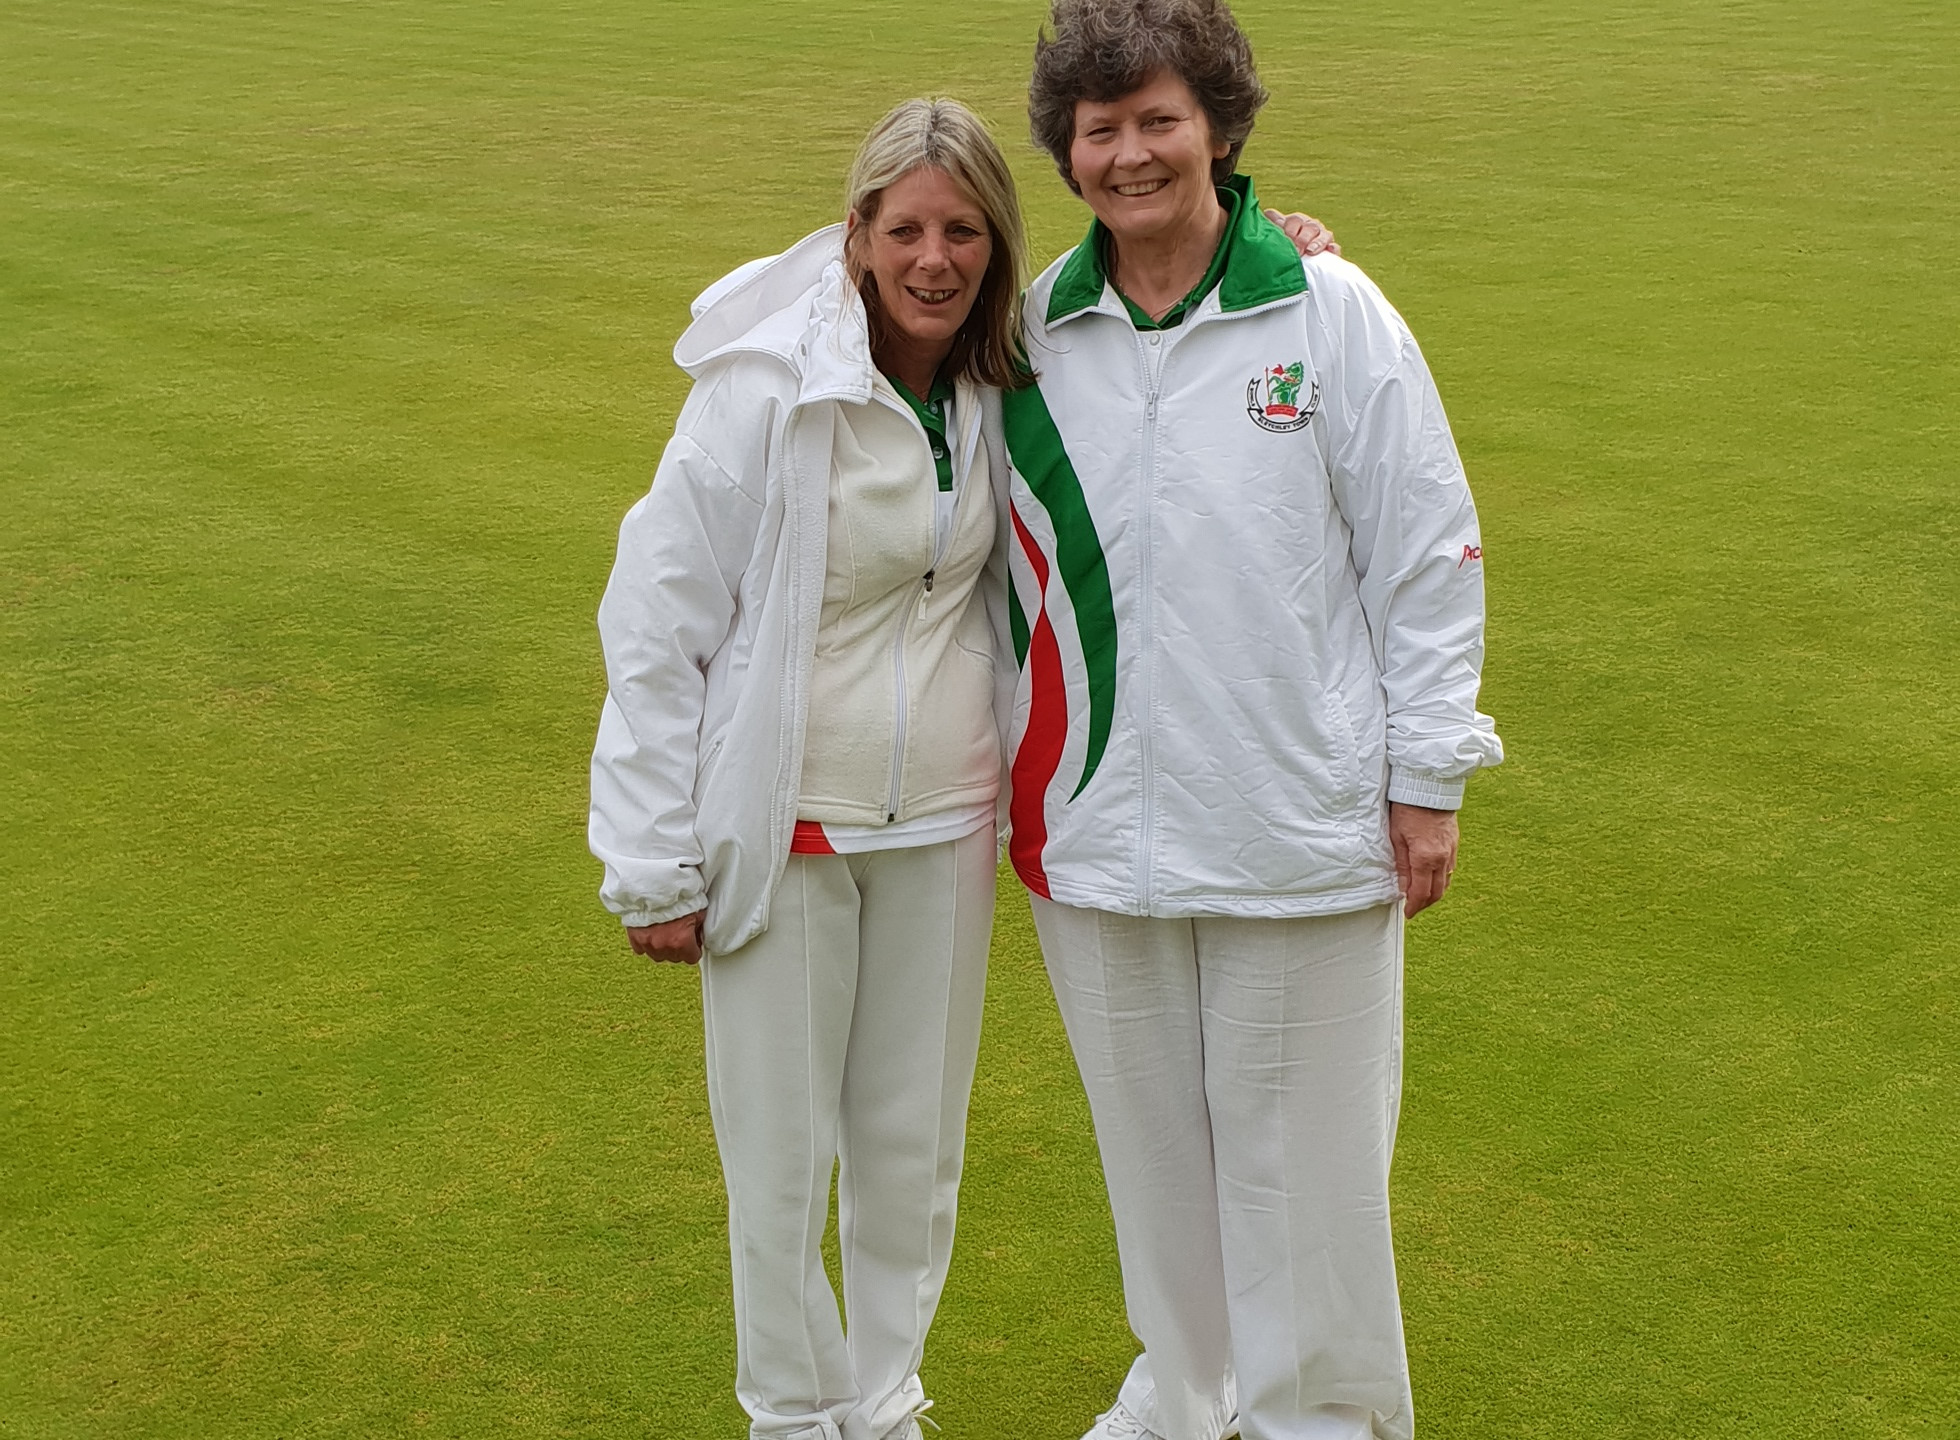 Jackie Squires + Jenny Windsor